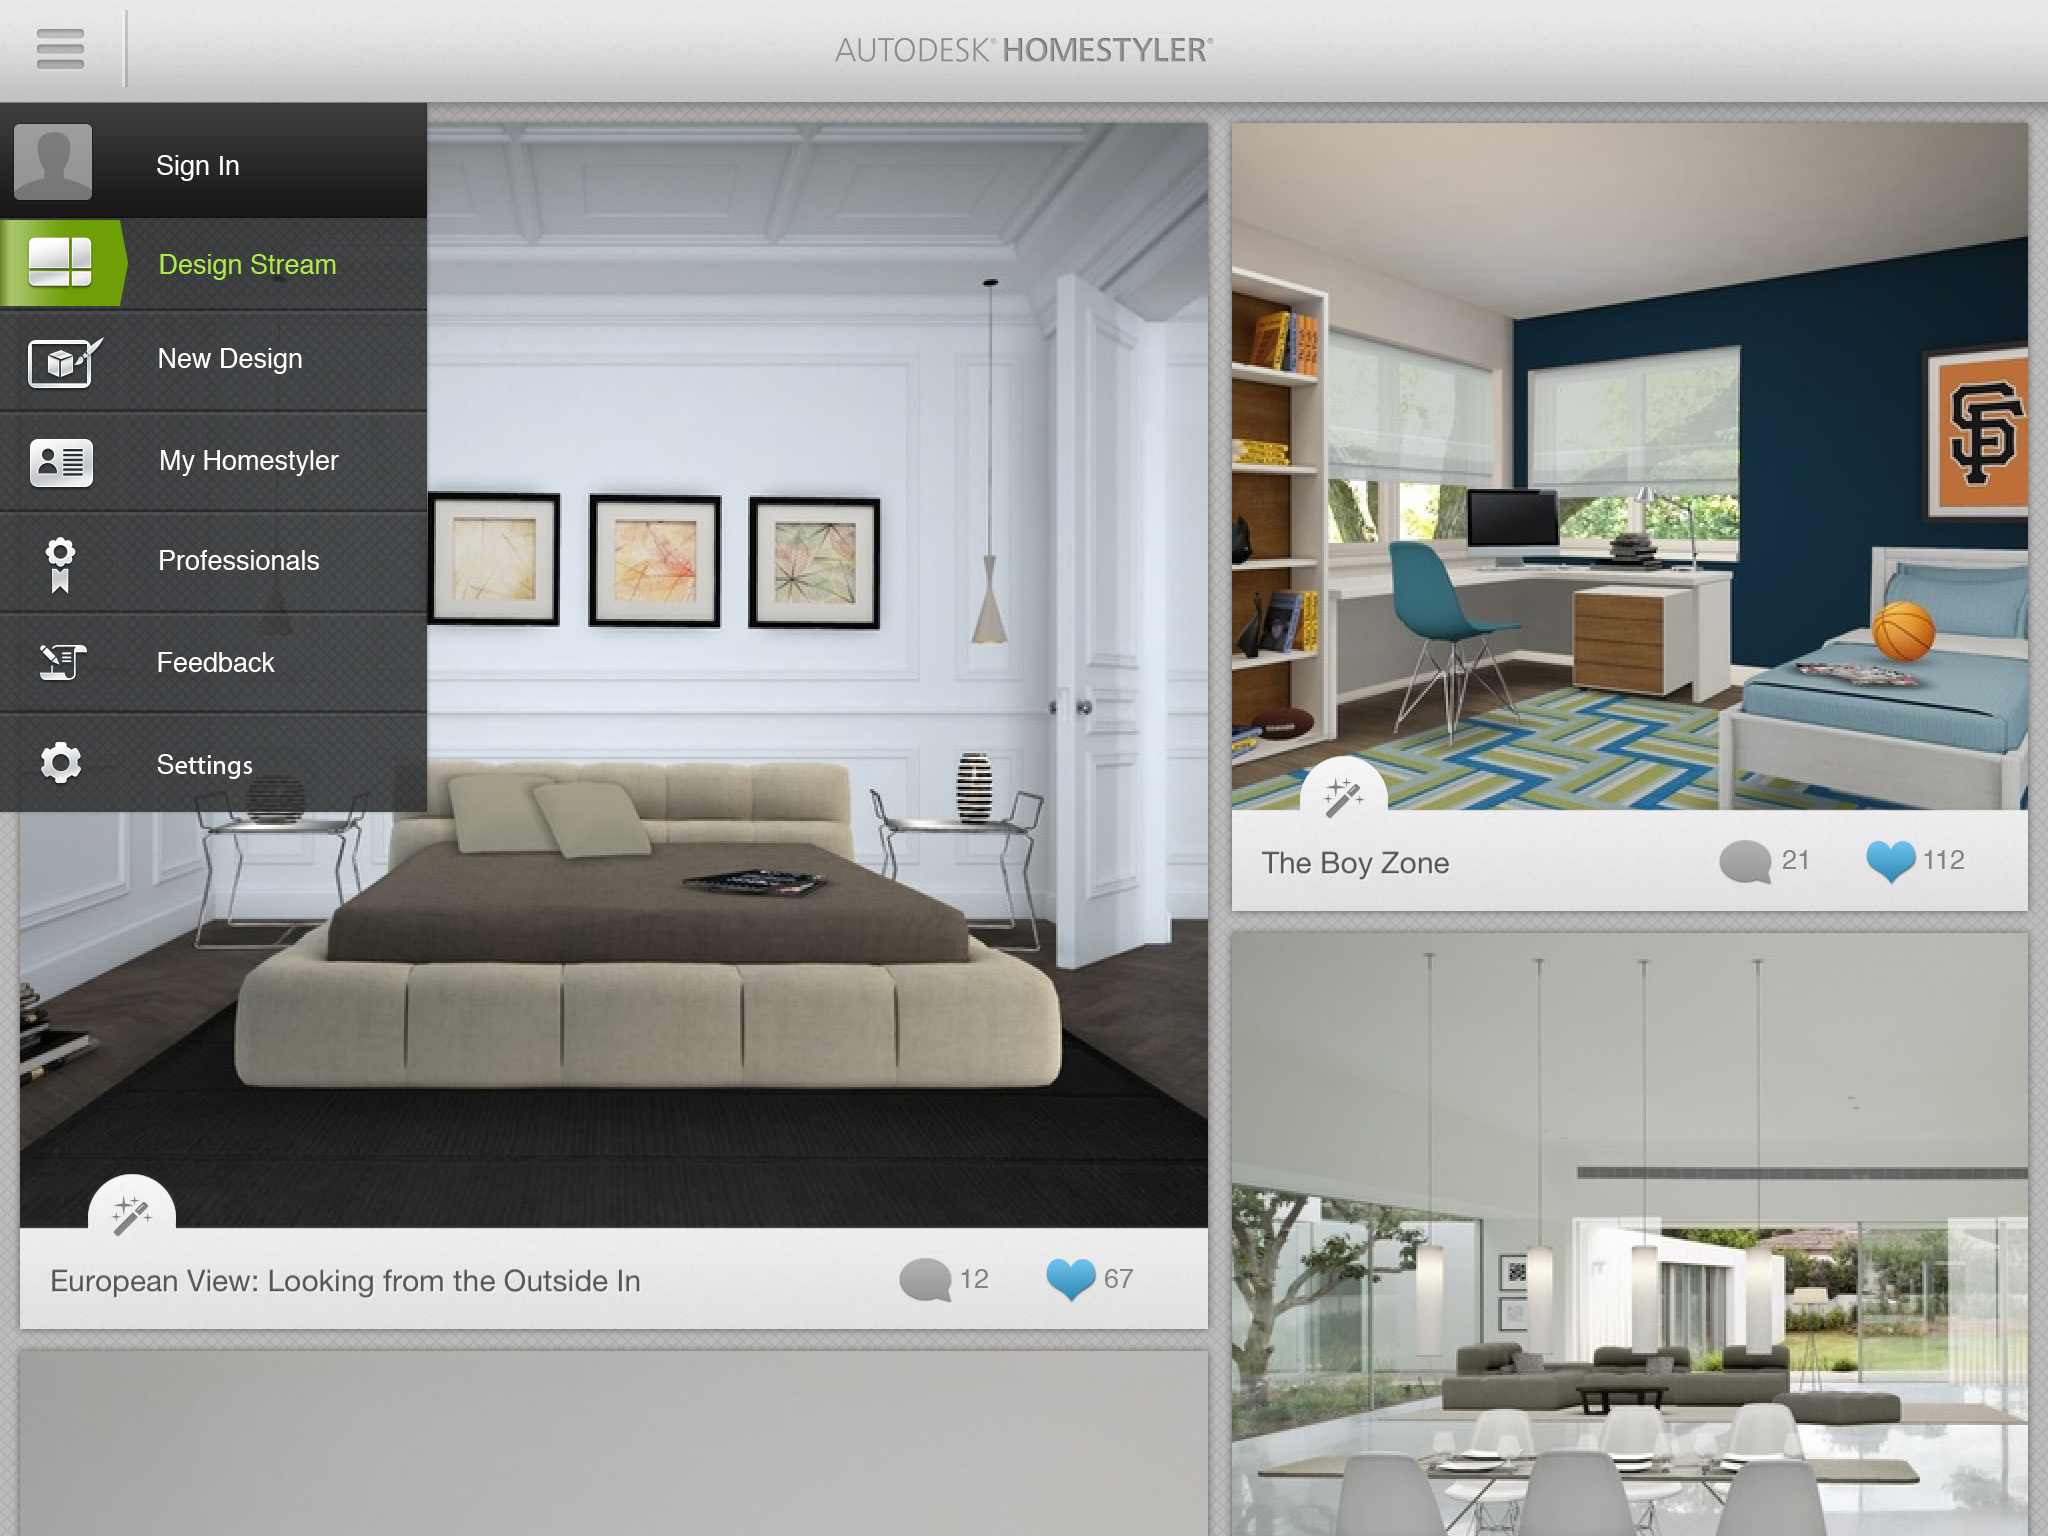 New Autodesk Homestyler App Transforms Your Living Space into Design Playground   Business Wire. New Autodesk Homestyler App Transforms Your Living Space into